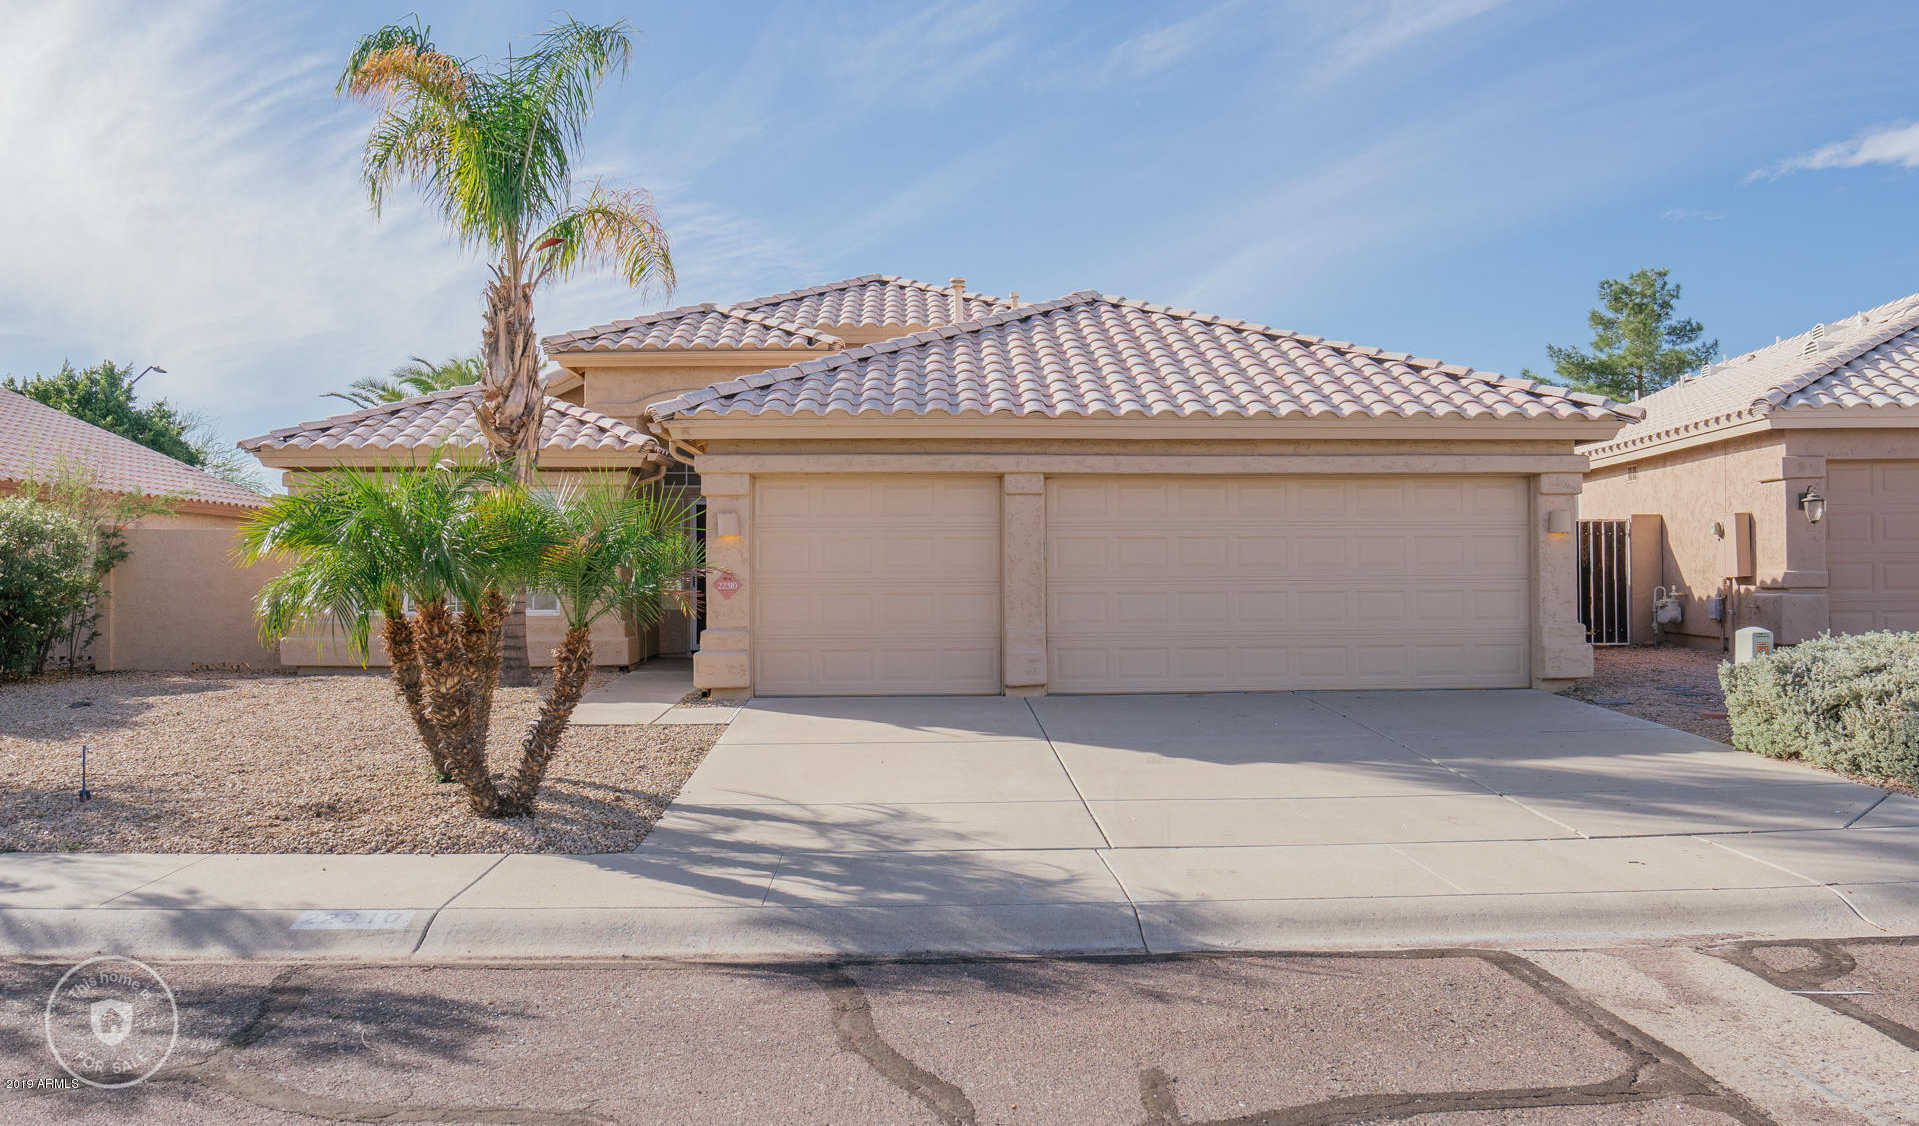 $350,000 - 4Br/2Ba - Home for Sale in Tanoan, Glendale